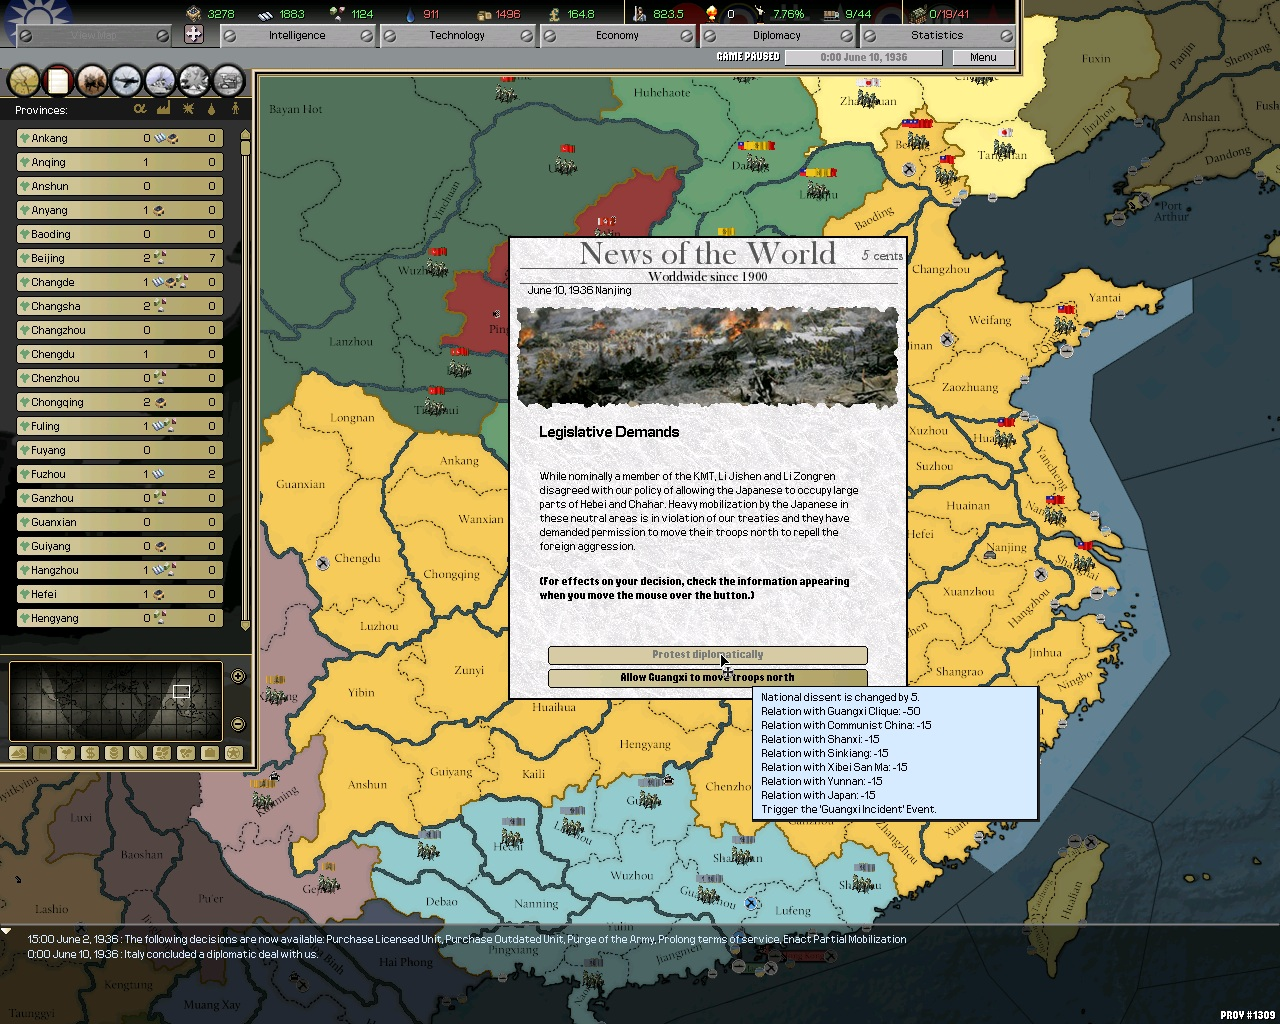 Consolidated China Improvement Pack for DH mod for Darkest